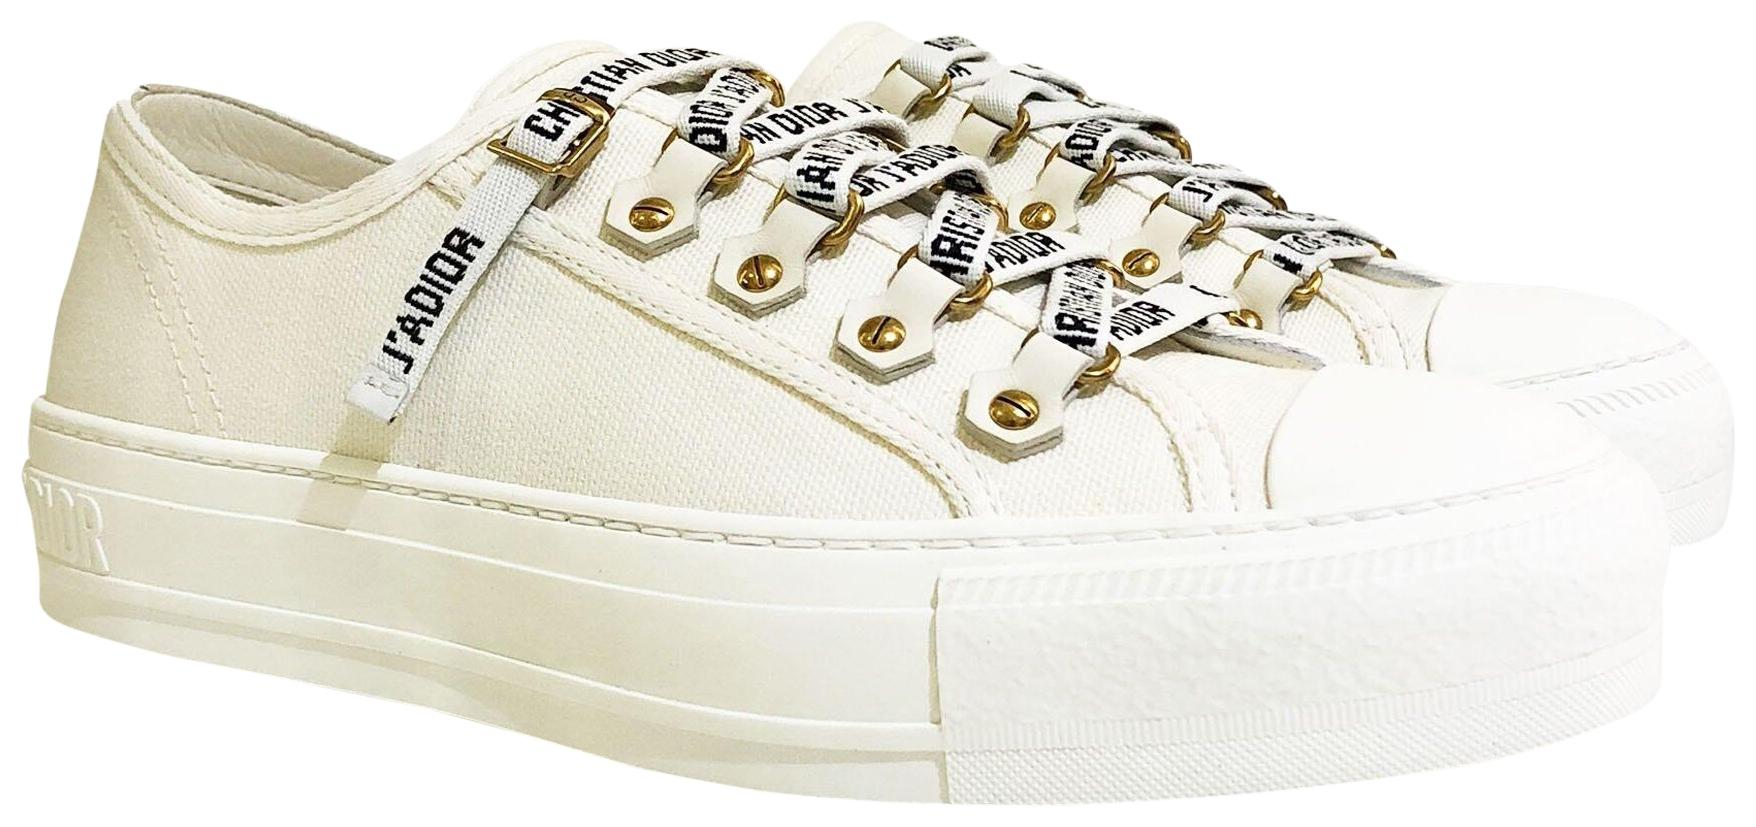 Dior White Low Trainer Sneakers Size EU 38 (Approx. US 8) Regular (M, B)